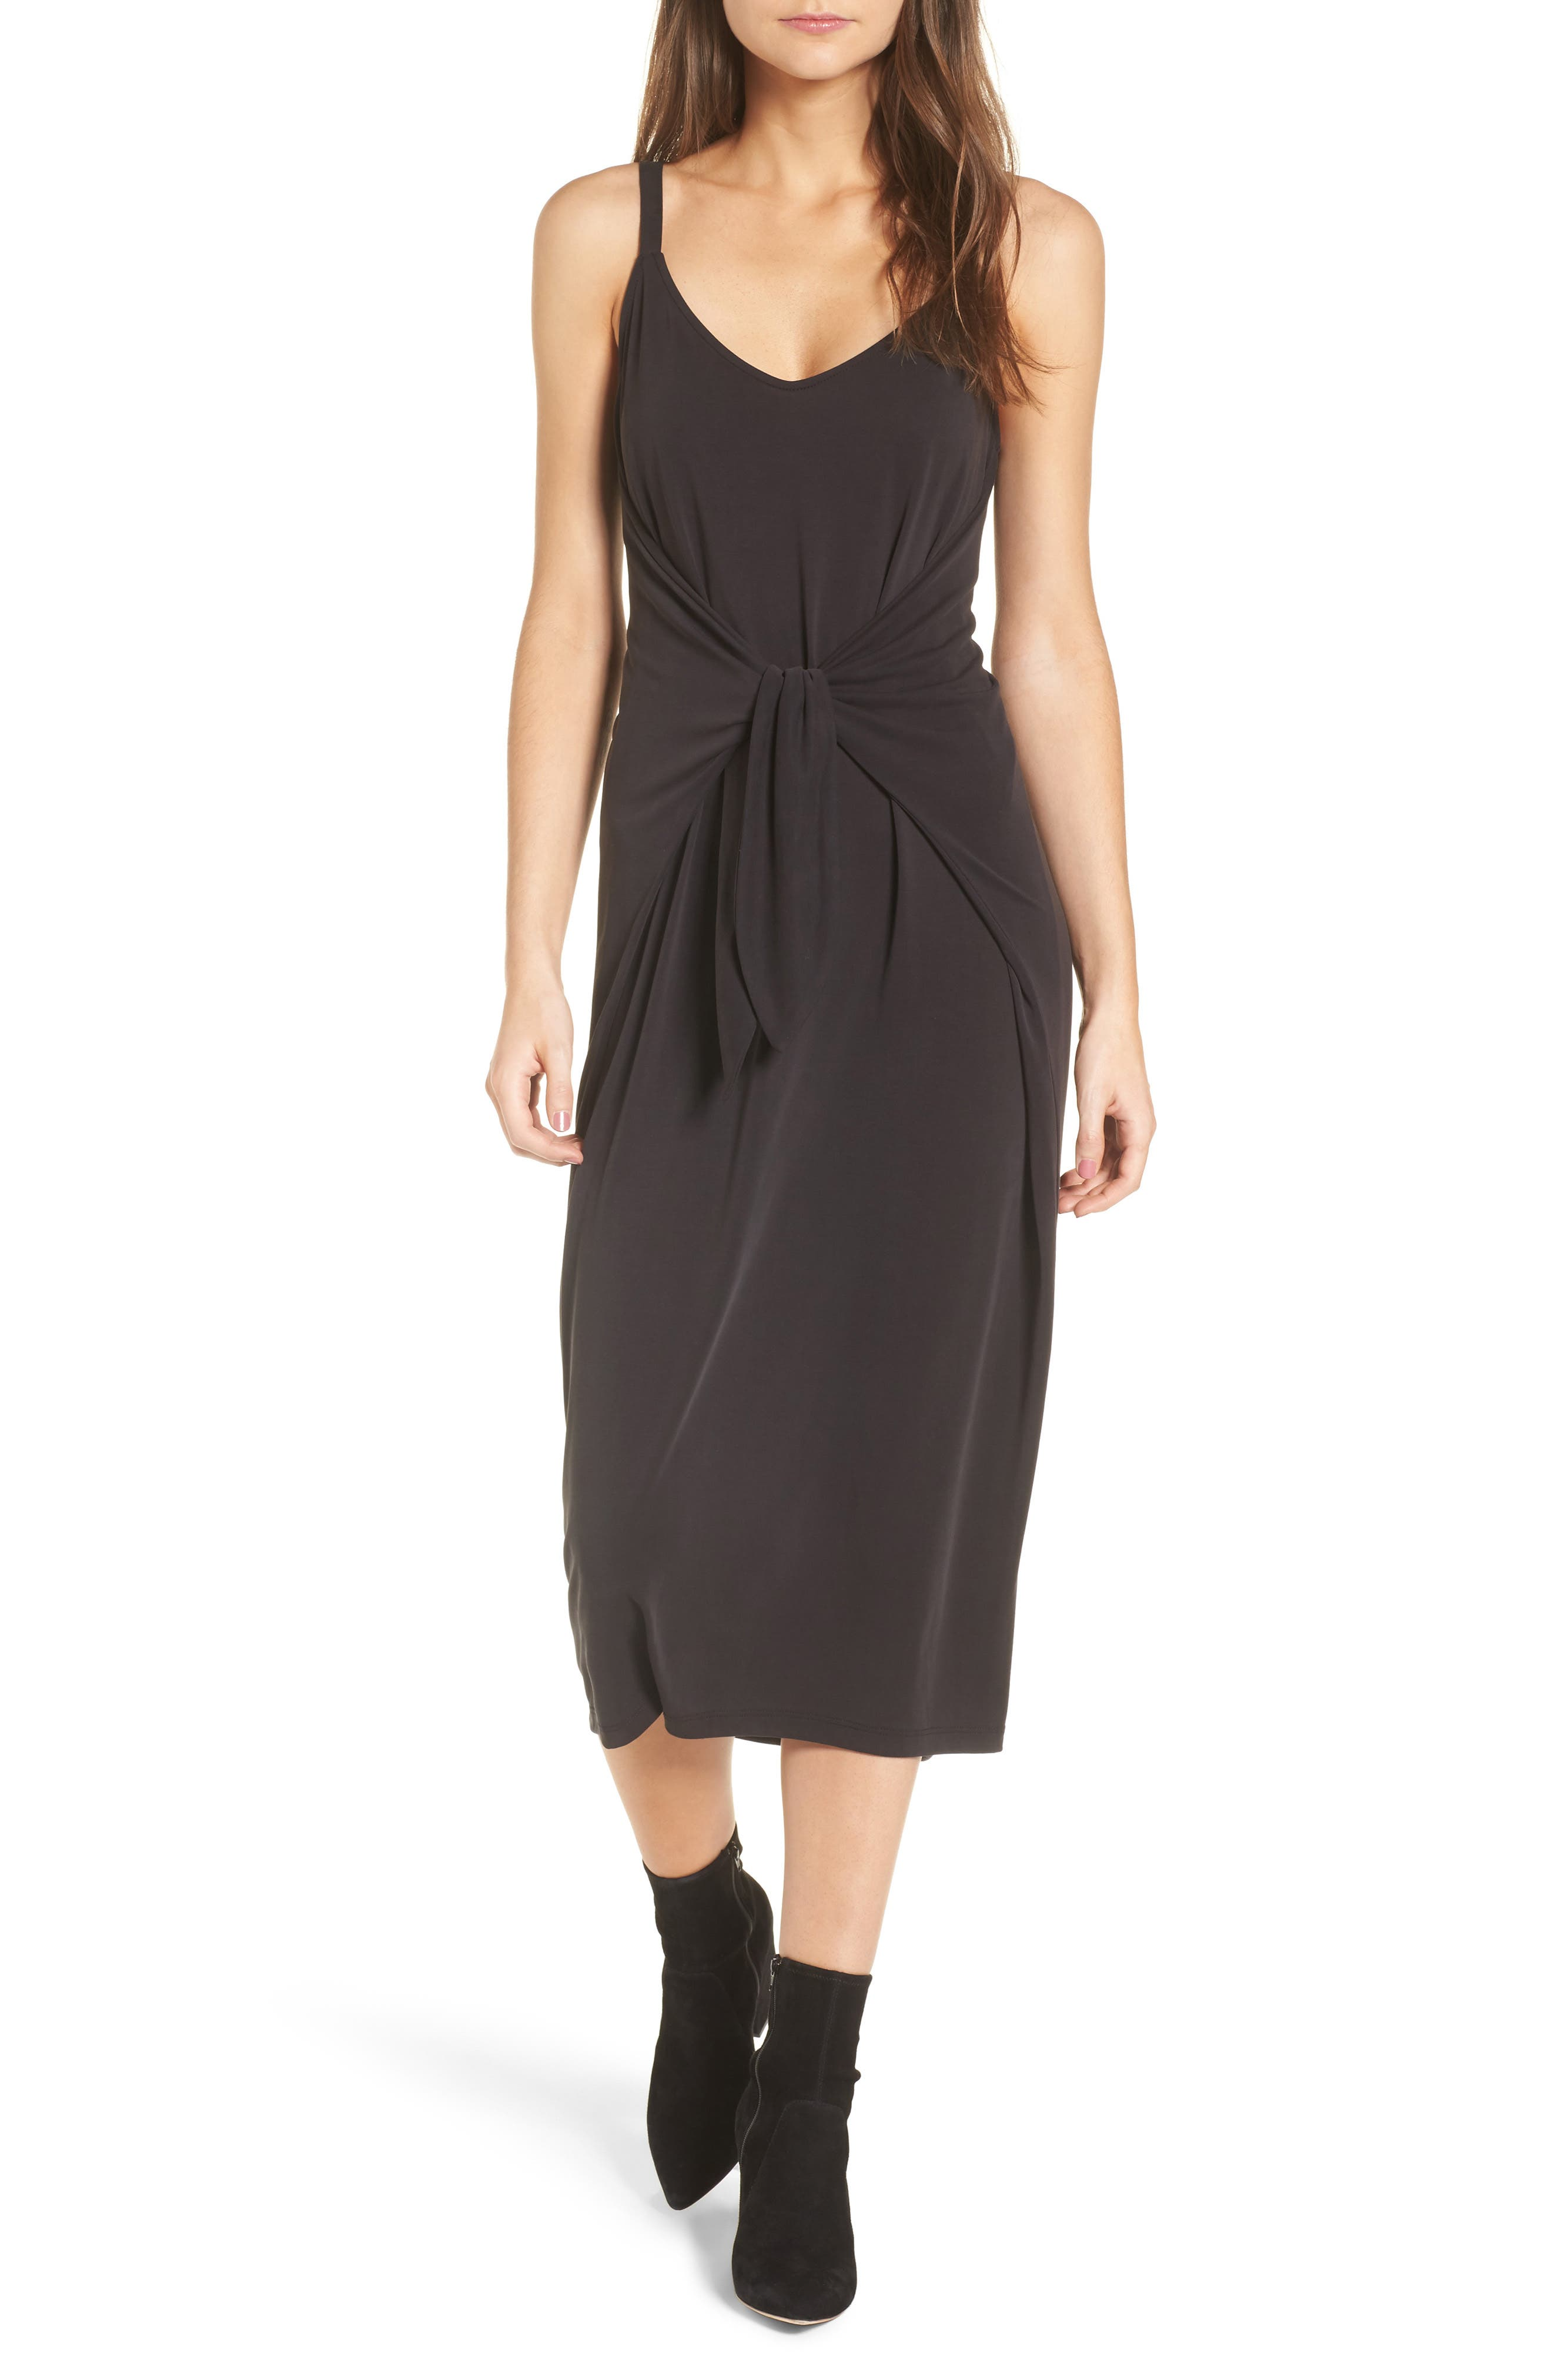 Knotted Midi Dress,                         Main,                         color, Black